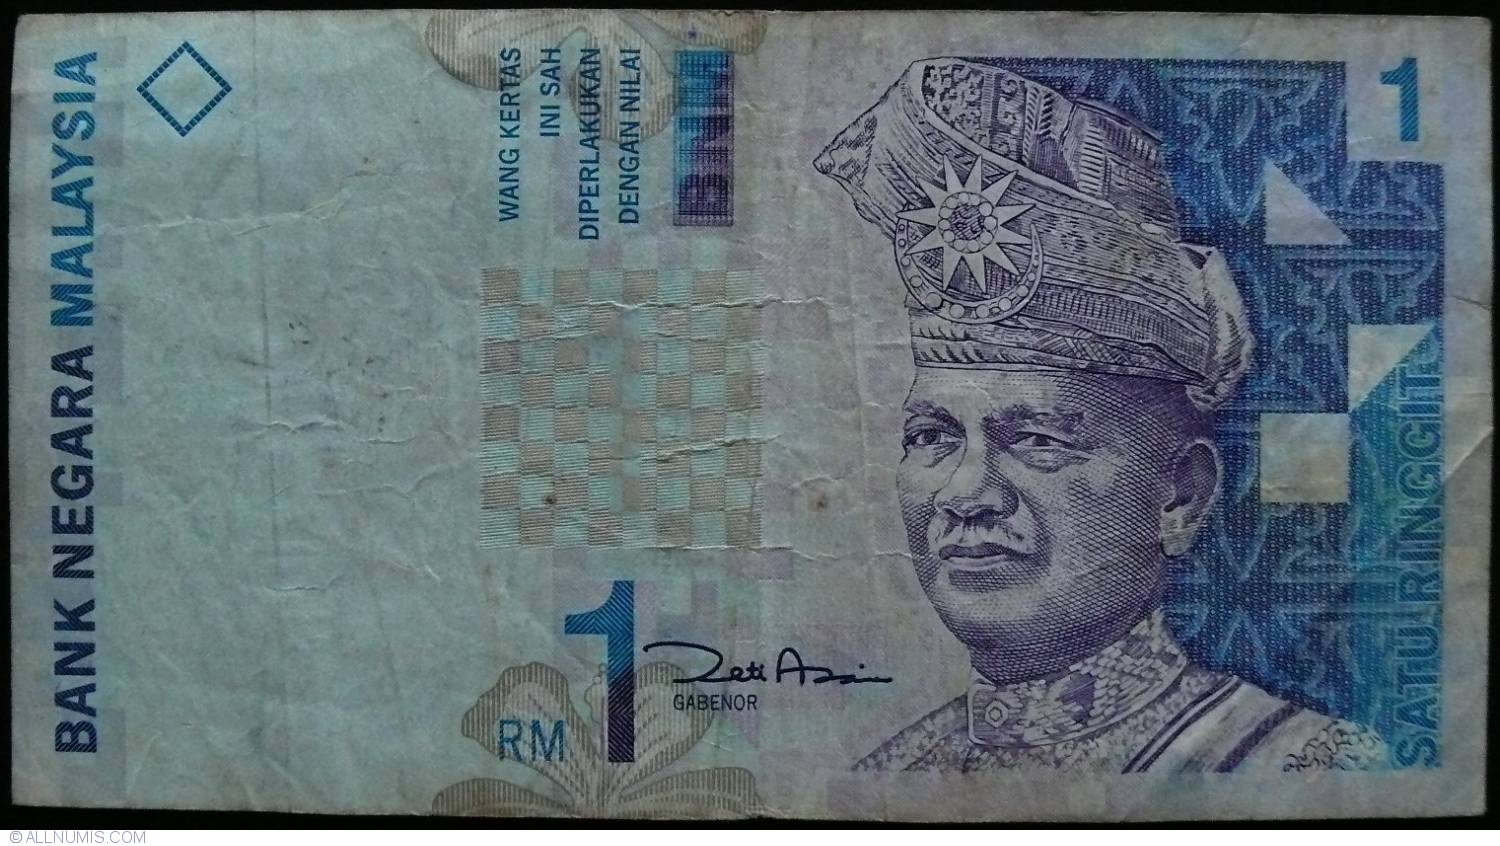 1 Ringgit Nd 1998 Series Type Aaa1234567 1996 2001 Nd Issue Malaysia Banknote 5405